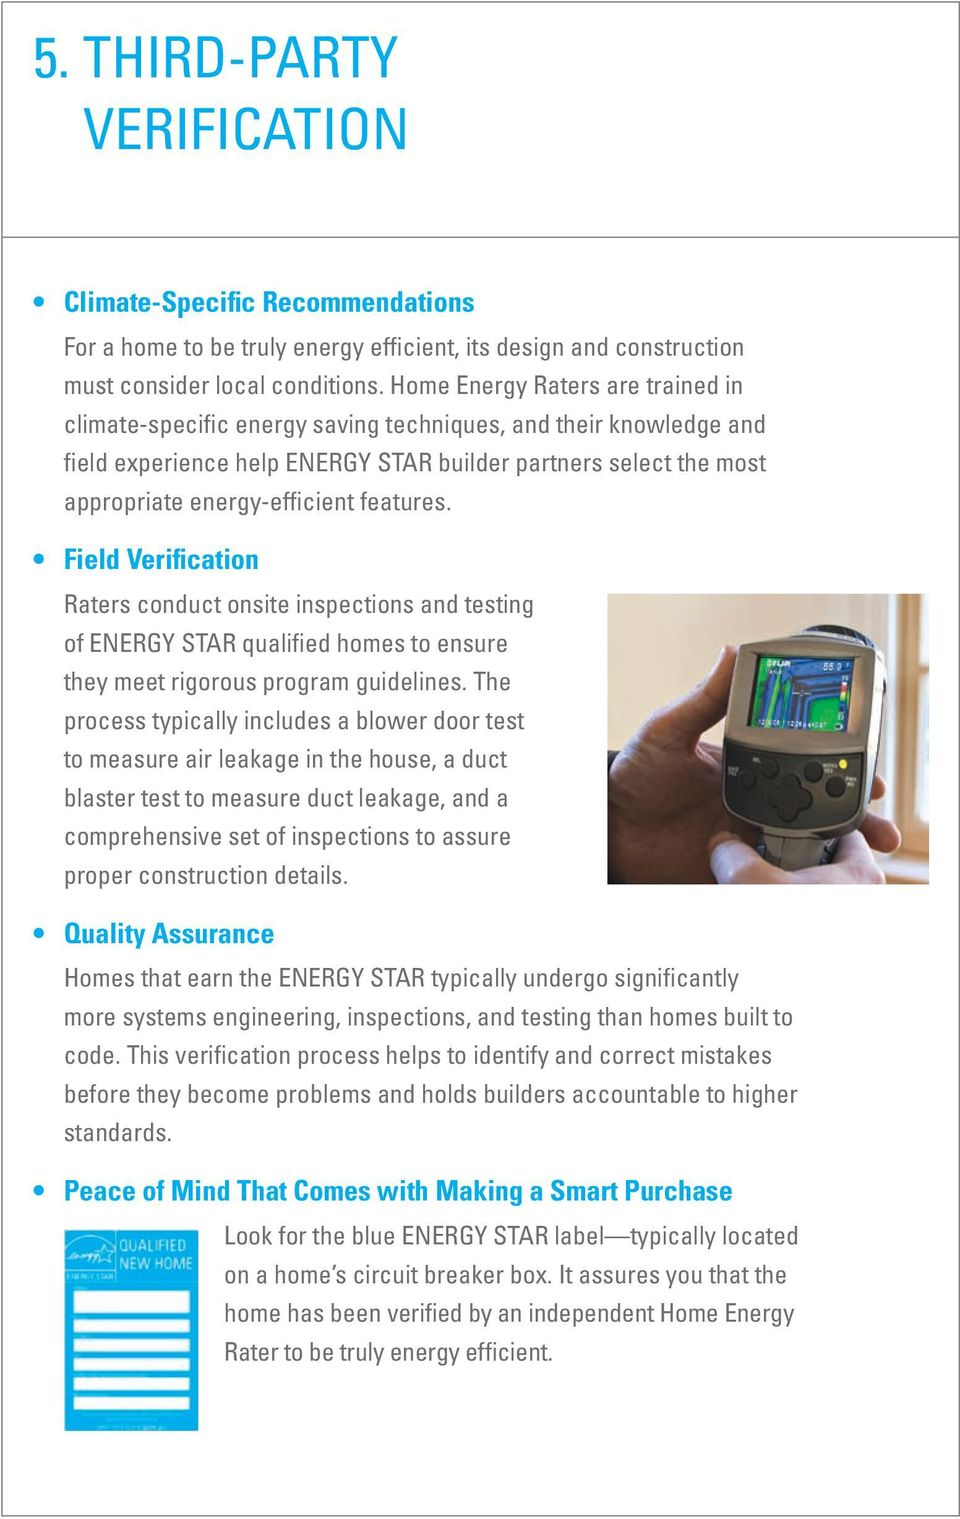 features. Field Verification Raters conduct onsite inspections and testing of ENERGY STAR qualified homes to ensure they meet rigorous program guidelines.